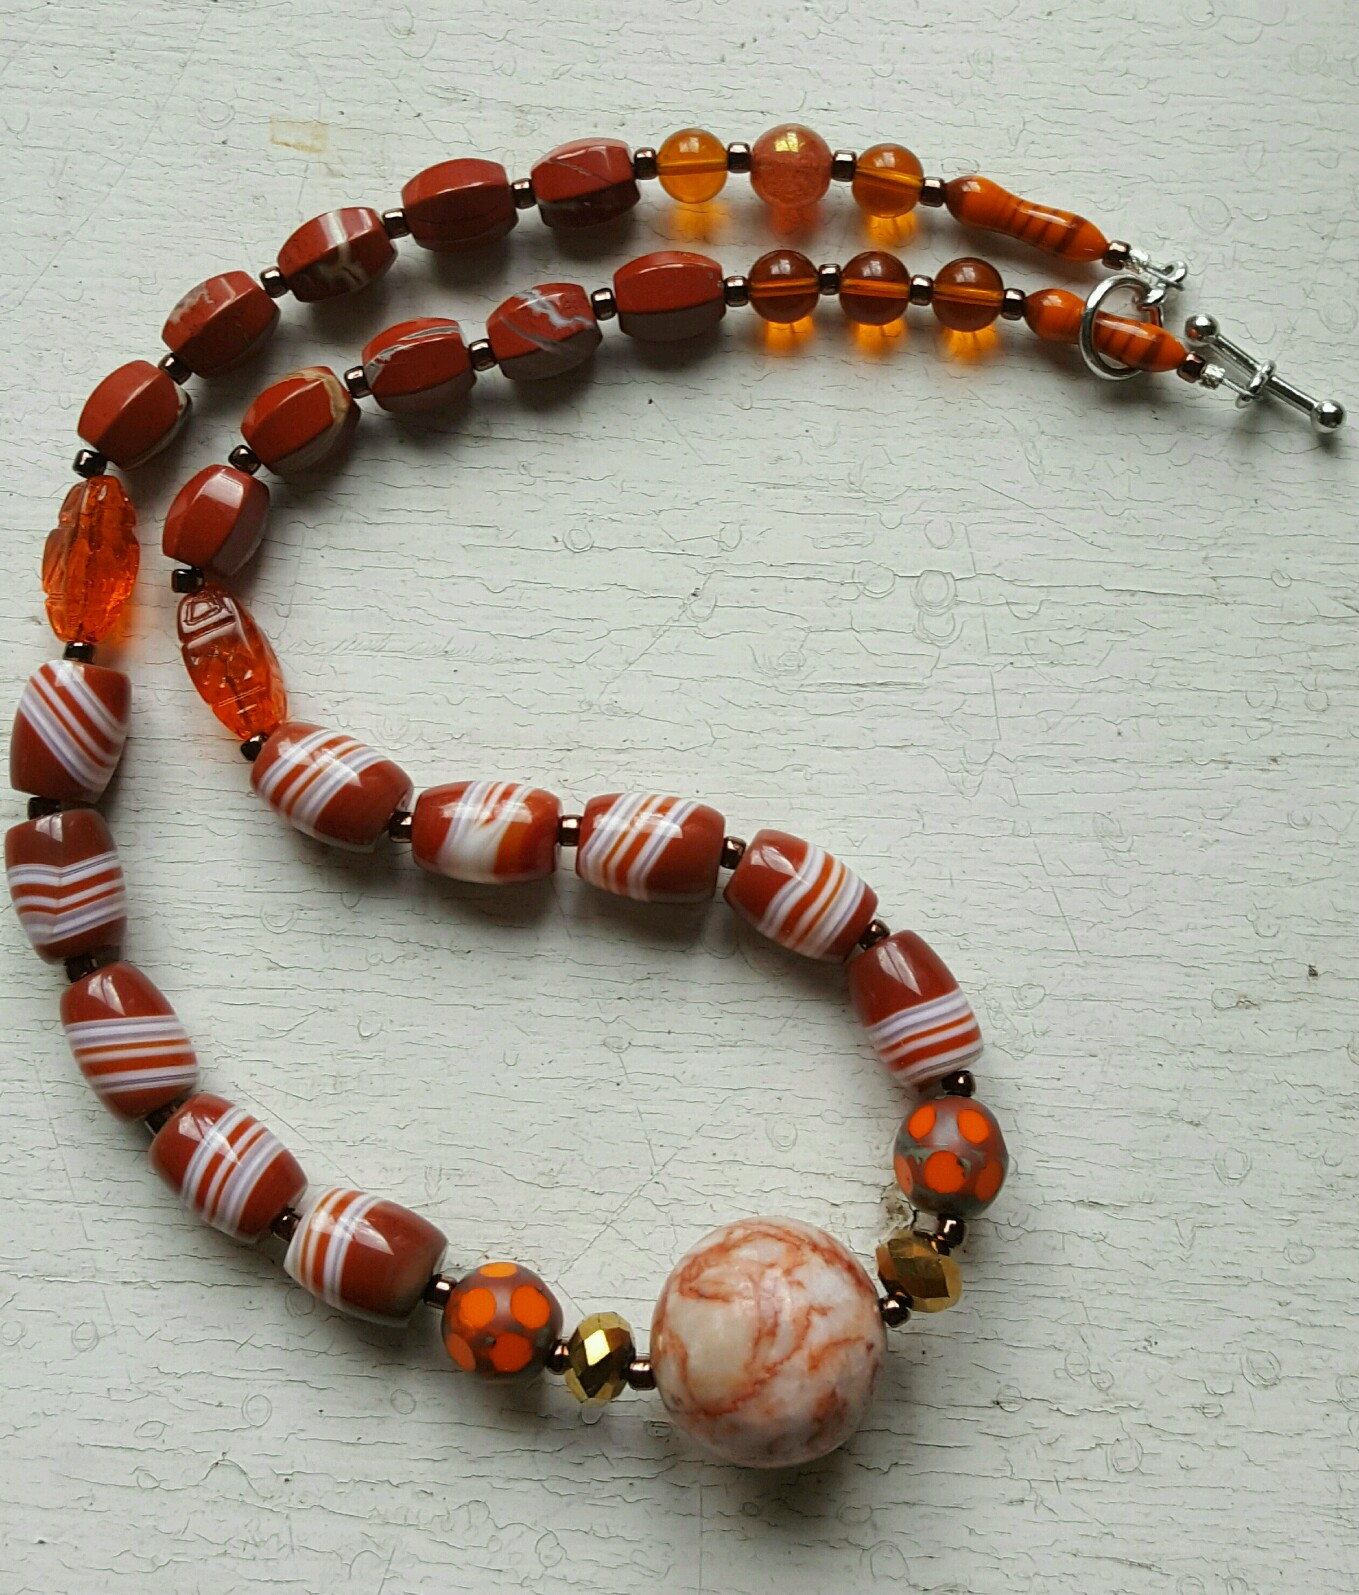 glass bead necklace by susan weeks